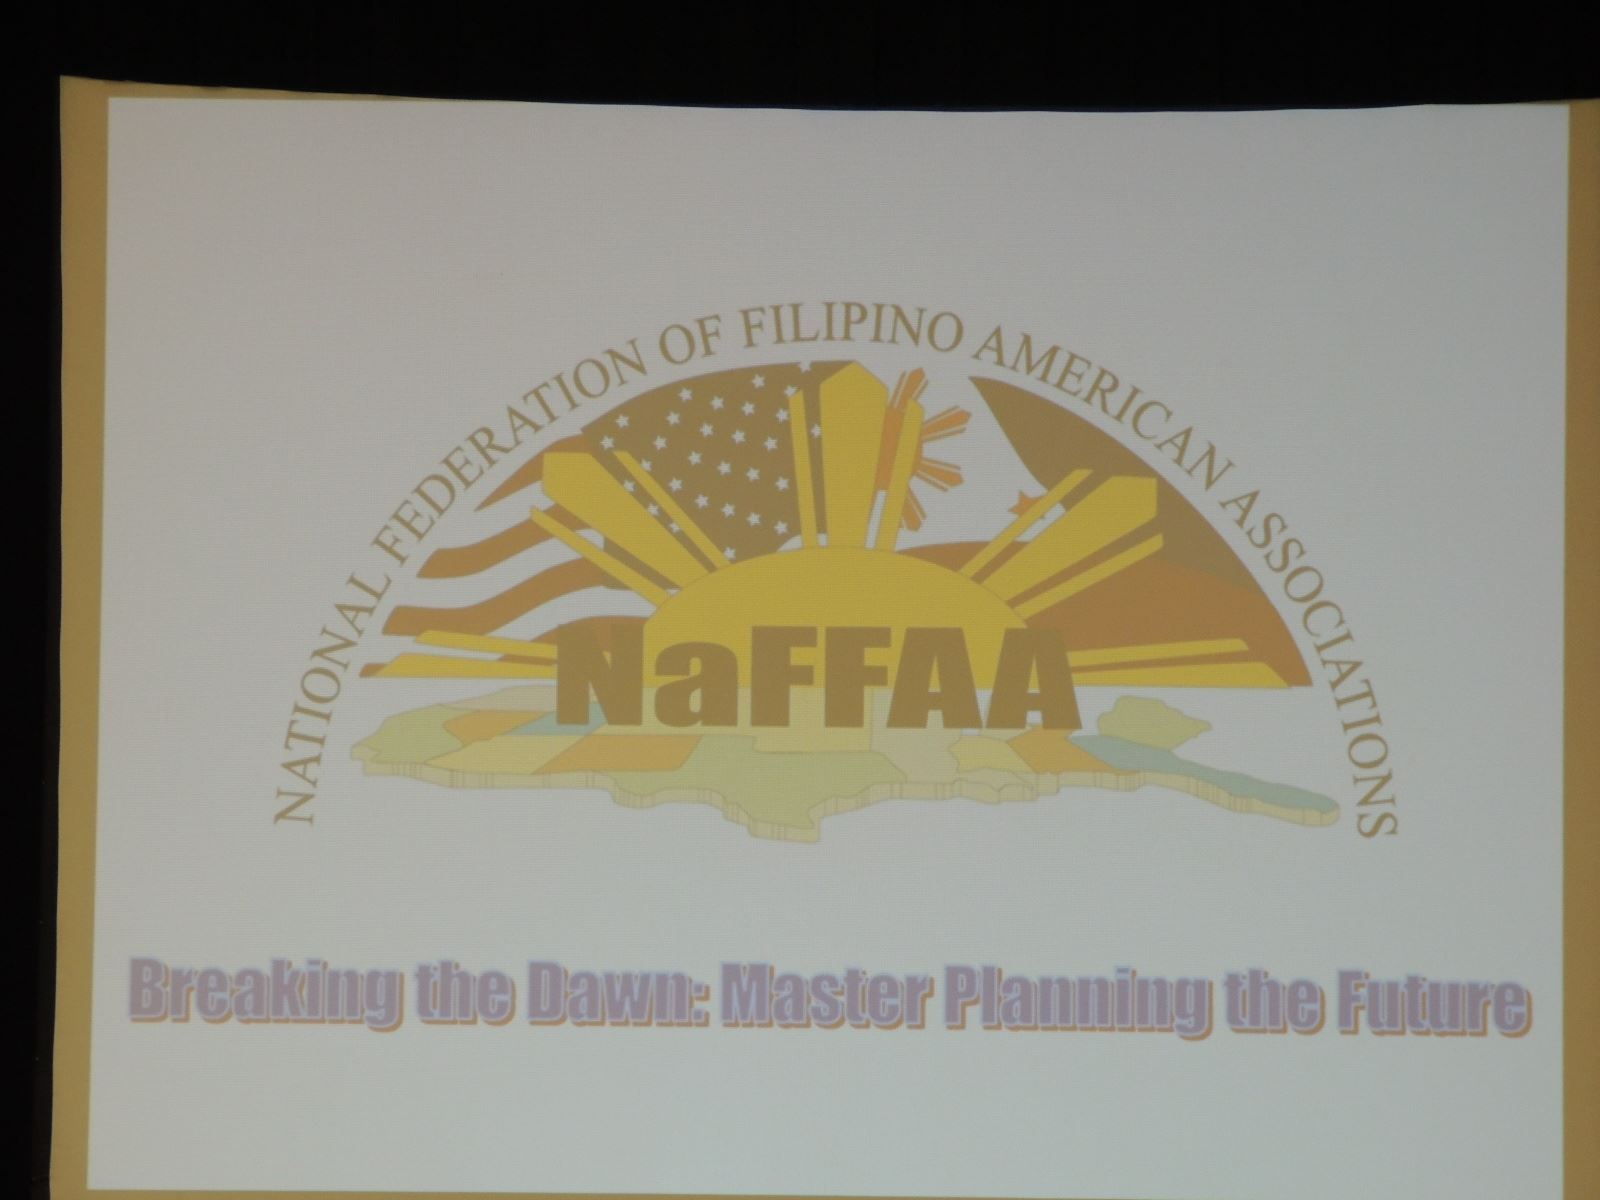 NaFFAA Workshop